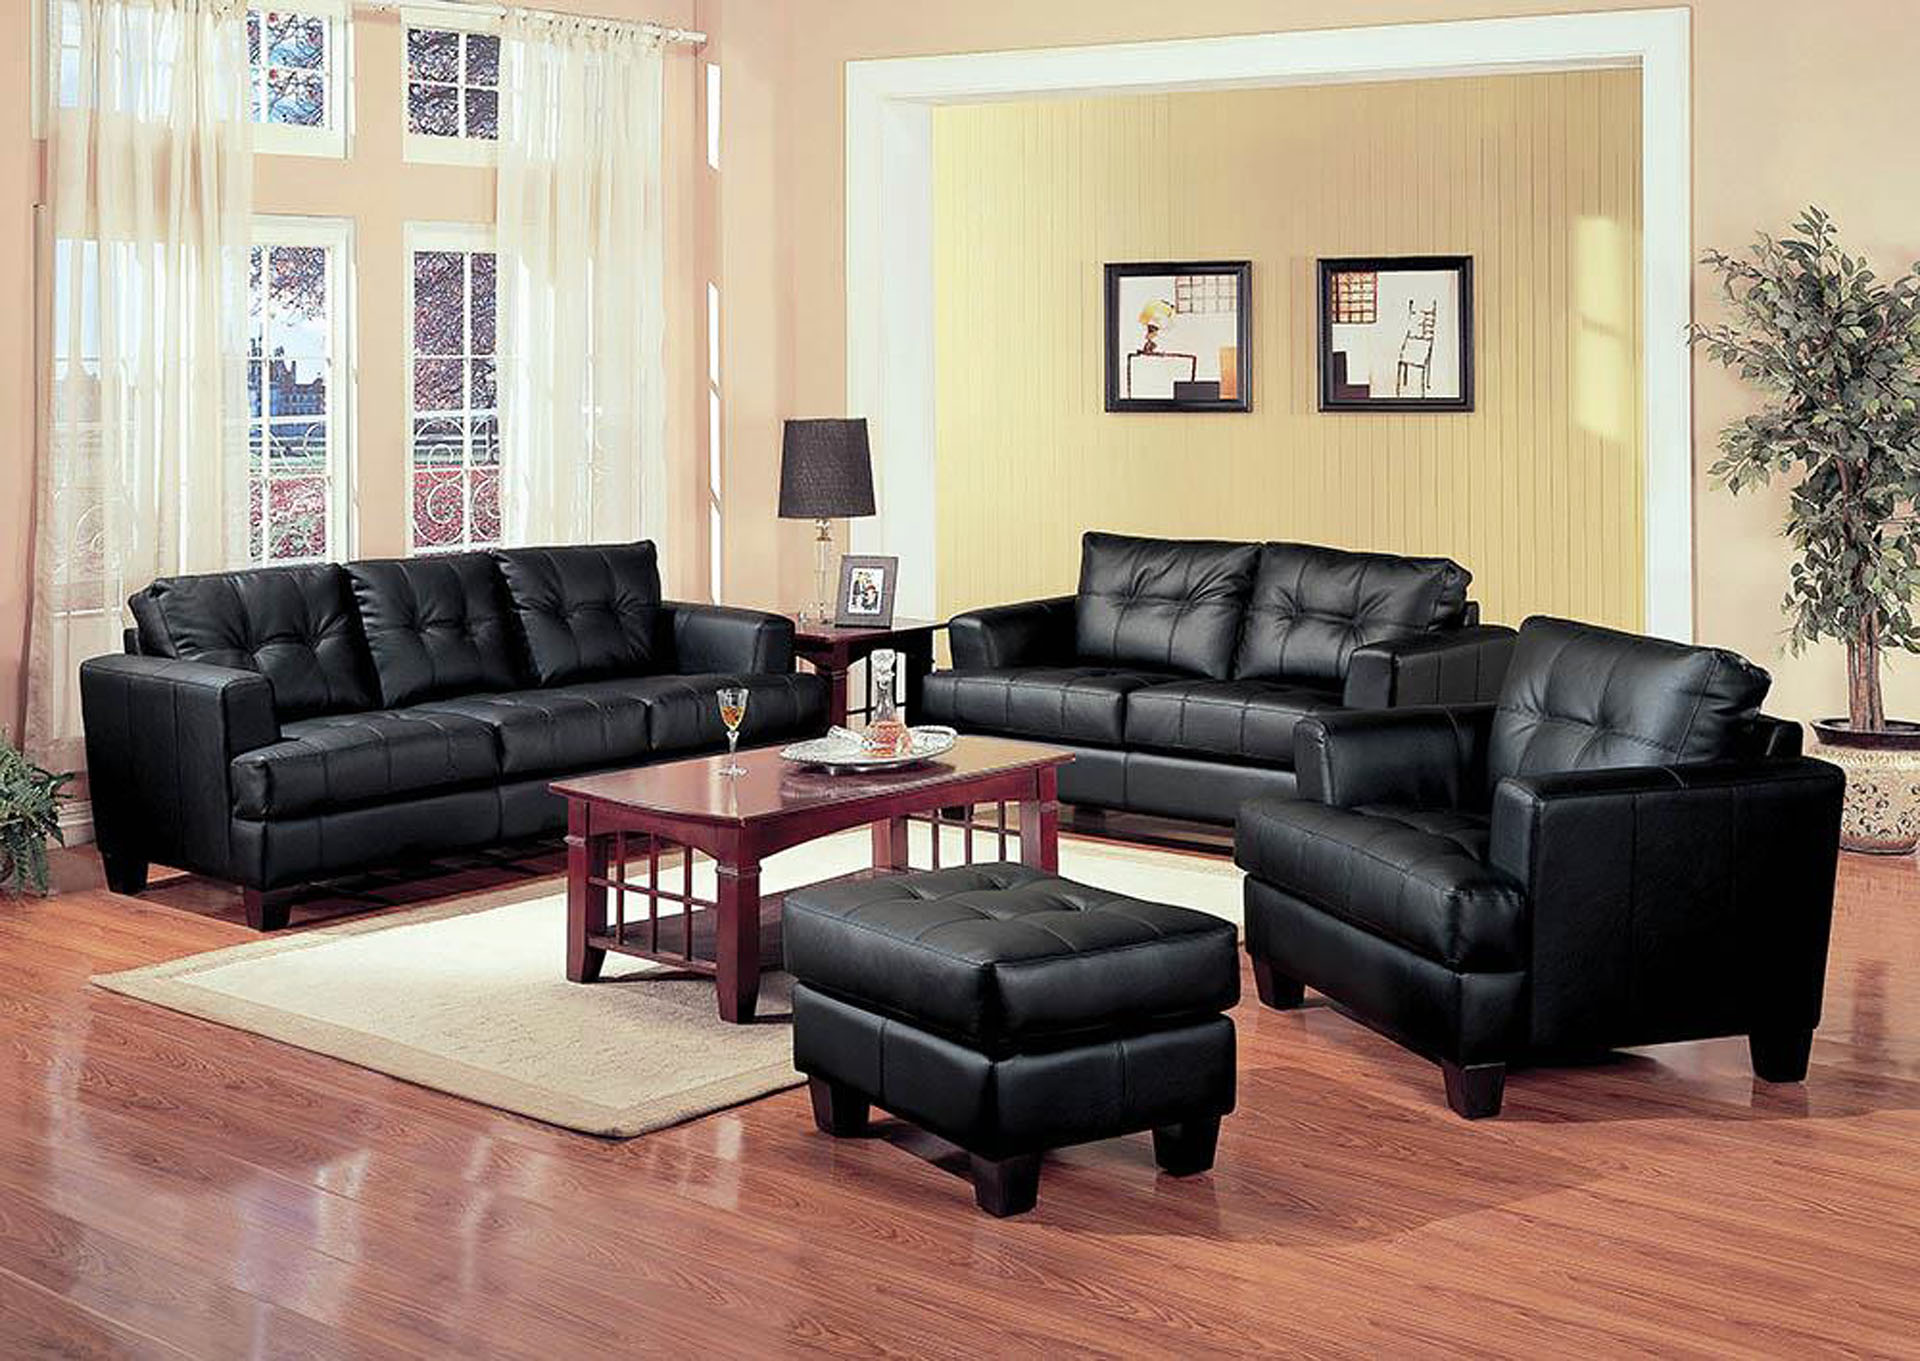 HD Furniture - East Orange, NJ Samuel Black Bonded Leather Sofa